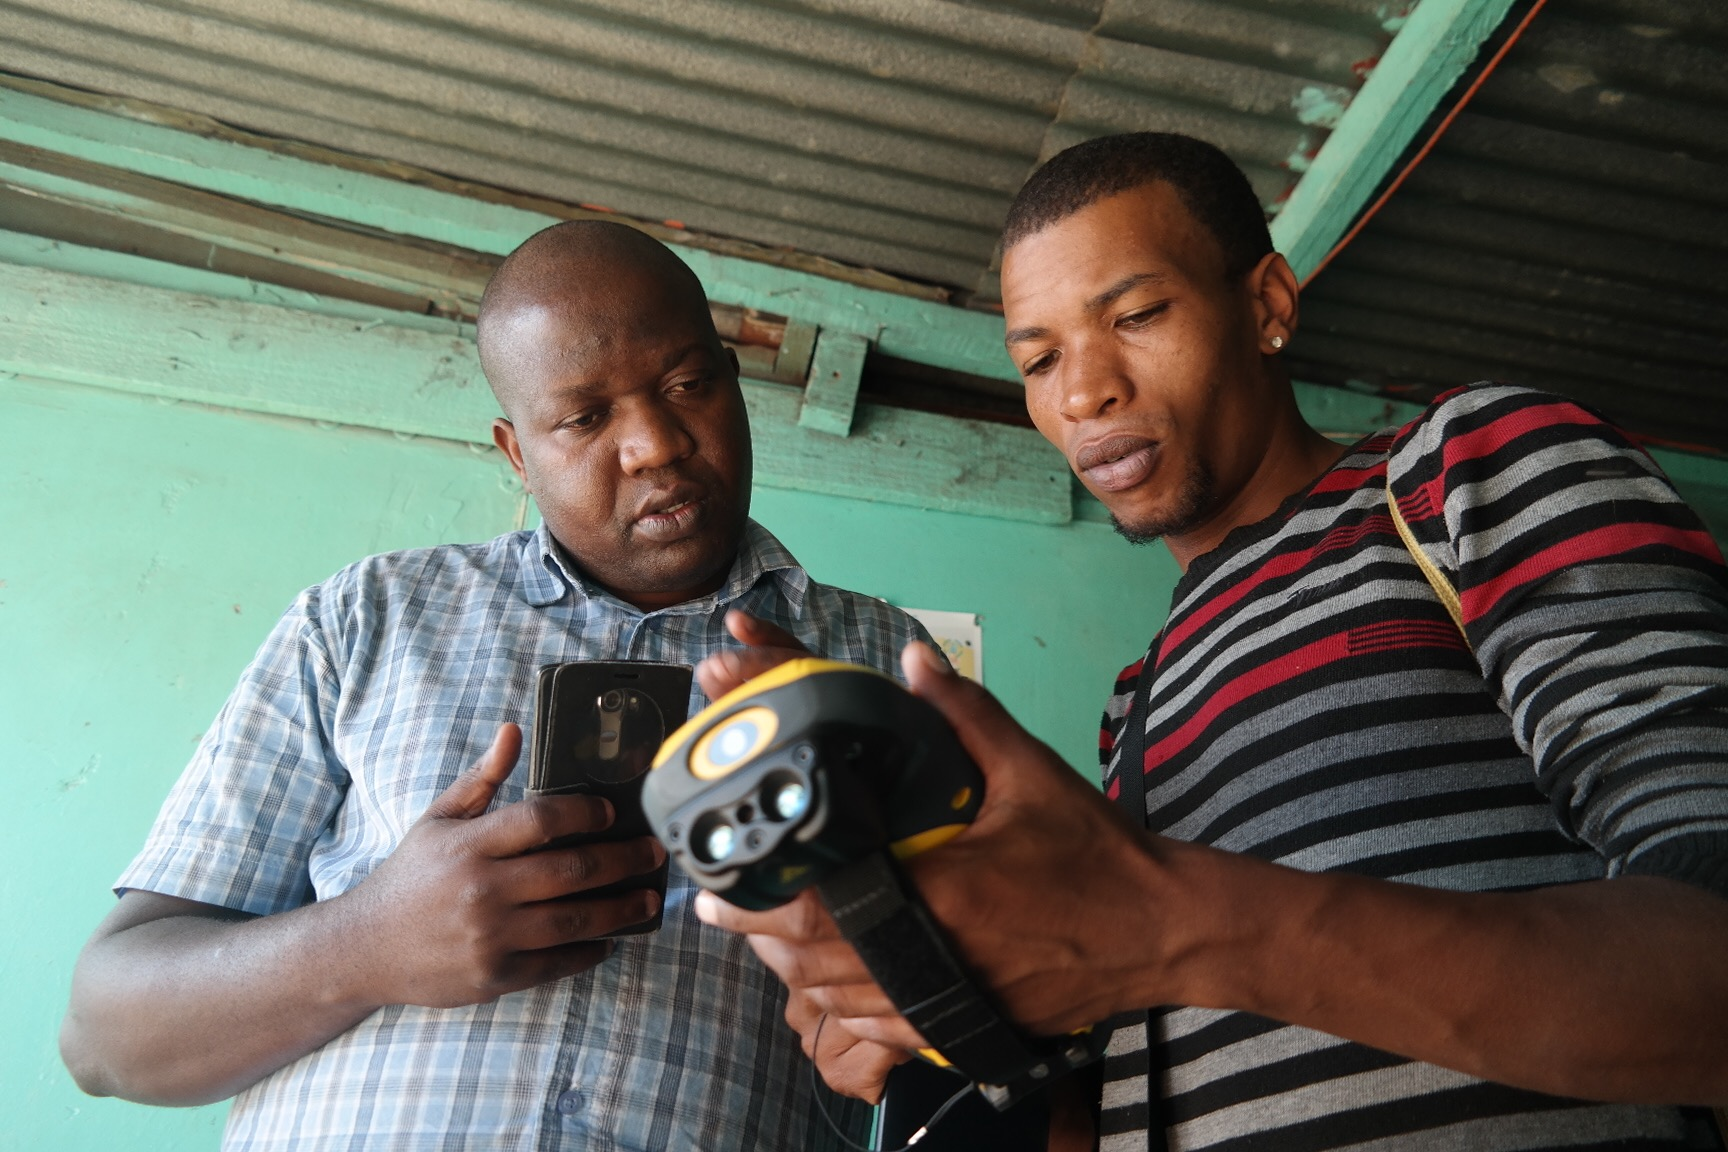 Blessing reviews how to work the Trimble device with a community enumerator in Gxagxa